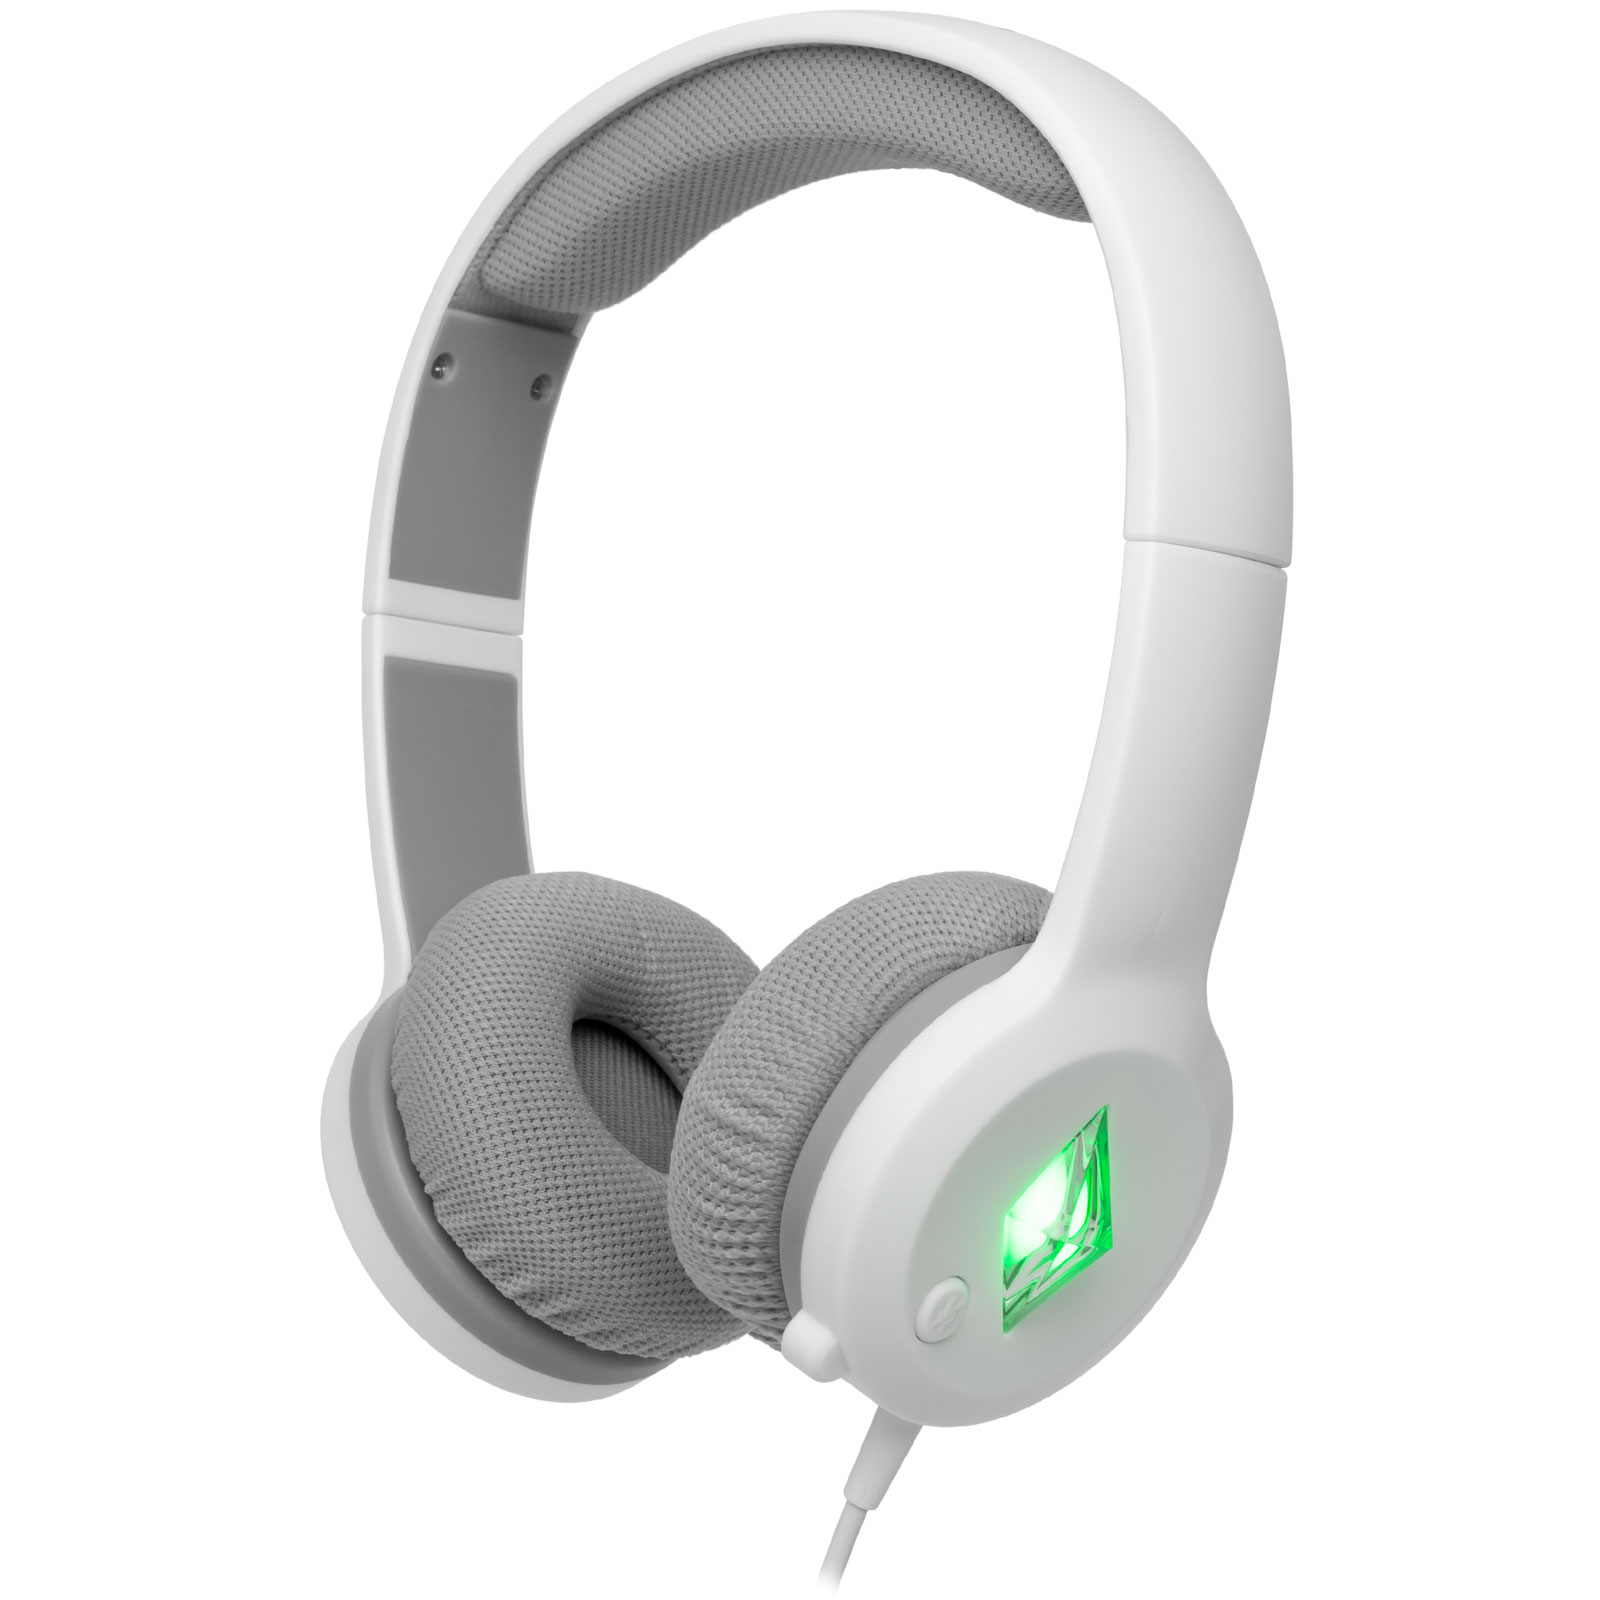 Micro-casque SteelSeries The Sims 4 Gaming Headset Casque gaming sous licence officielle - supra-aural fermé - son Stéréo 2.0 - microphone omnidirectionnel invisible - rétroéclairage auto-géré par le jeu - USB